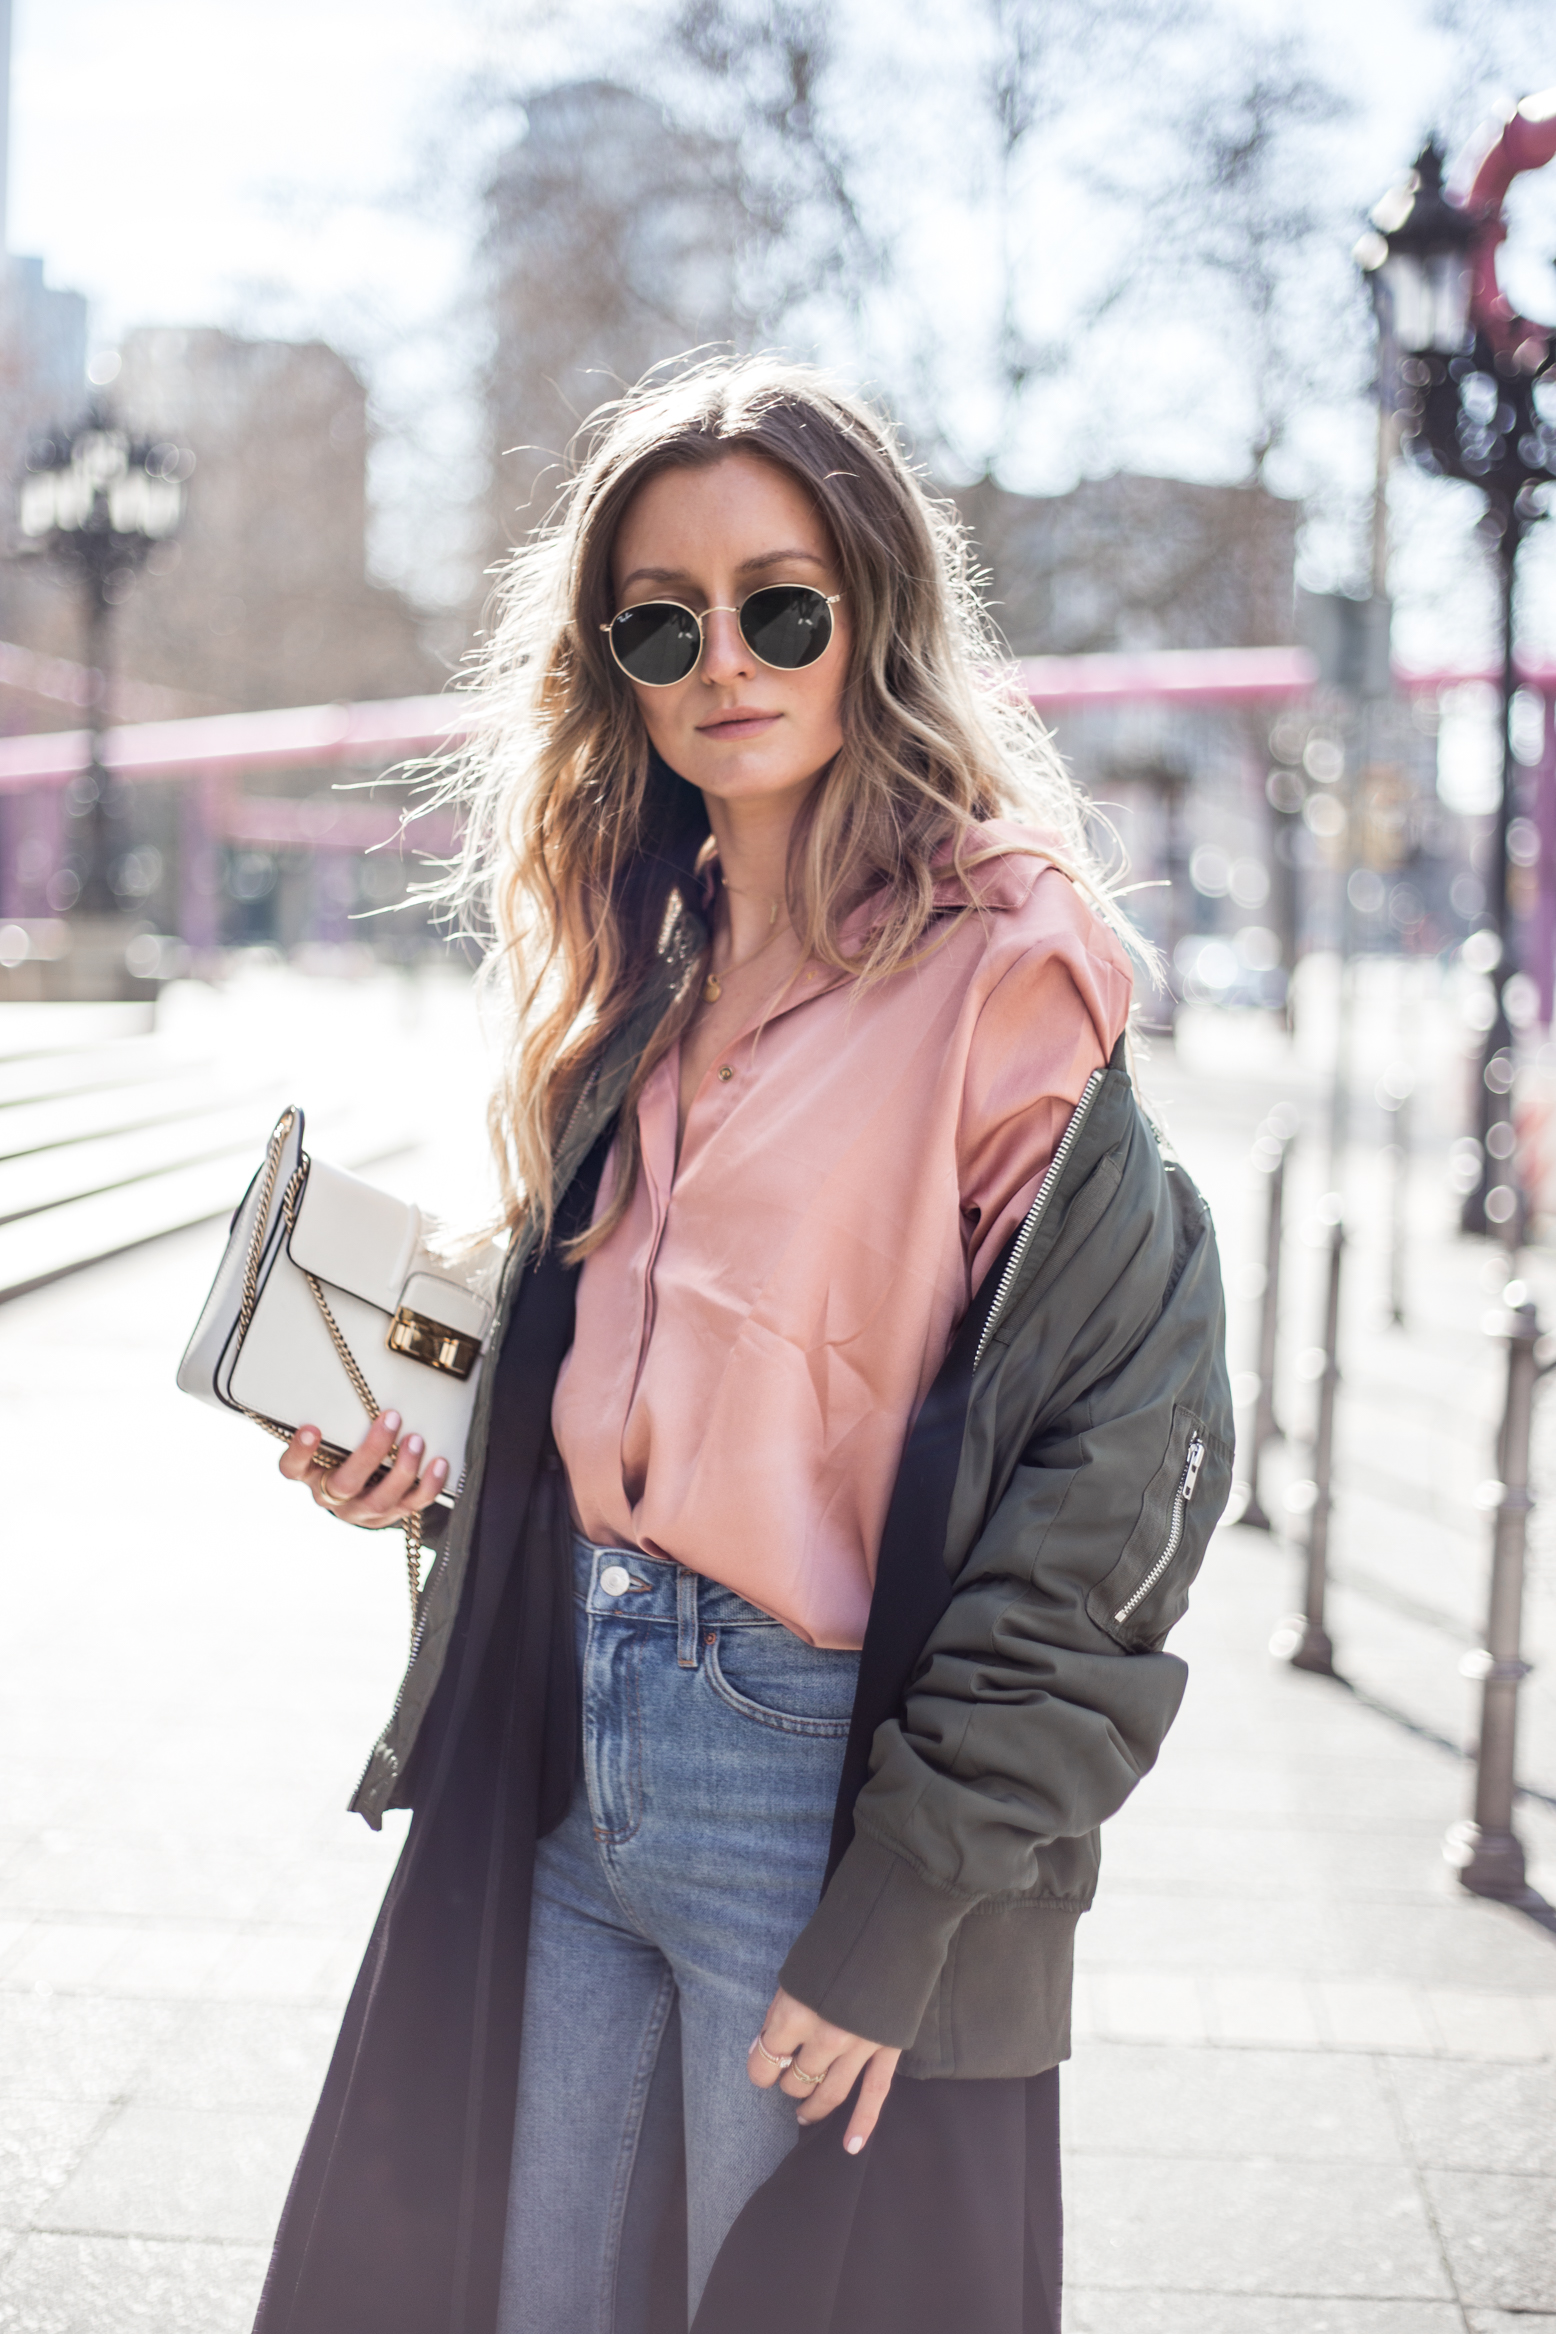 silk-shirt-bomber-jacket-outfit-1384